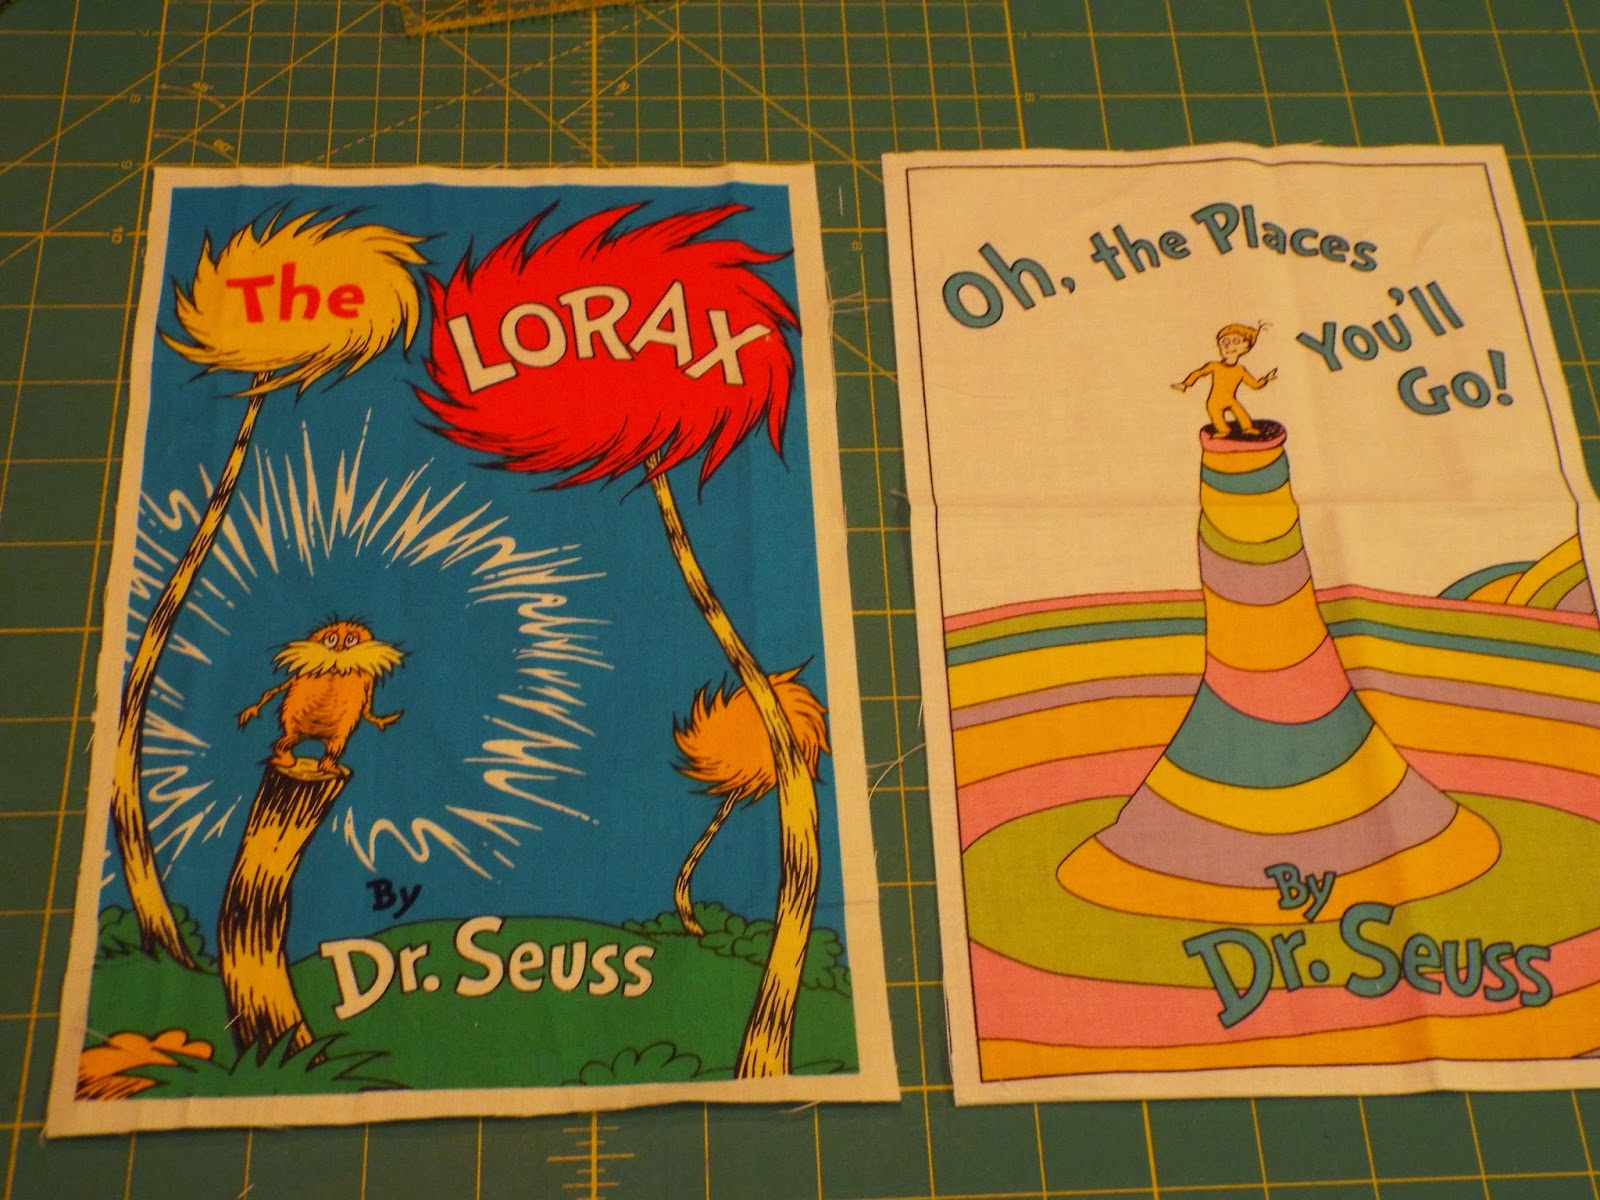 essay about the lorax